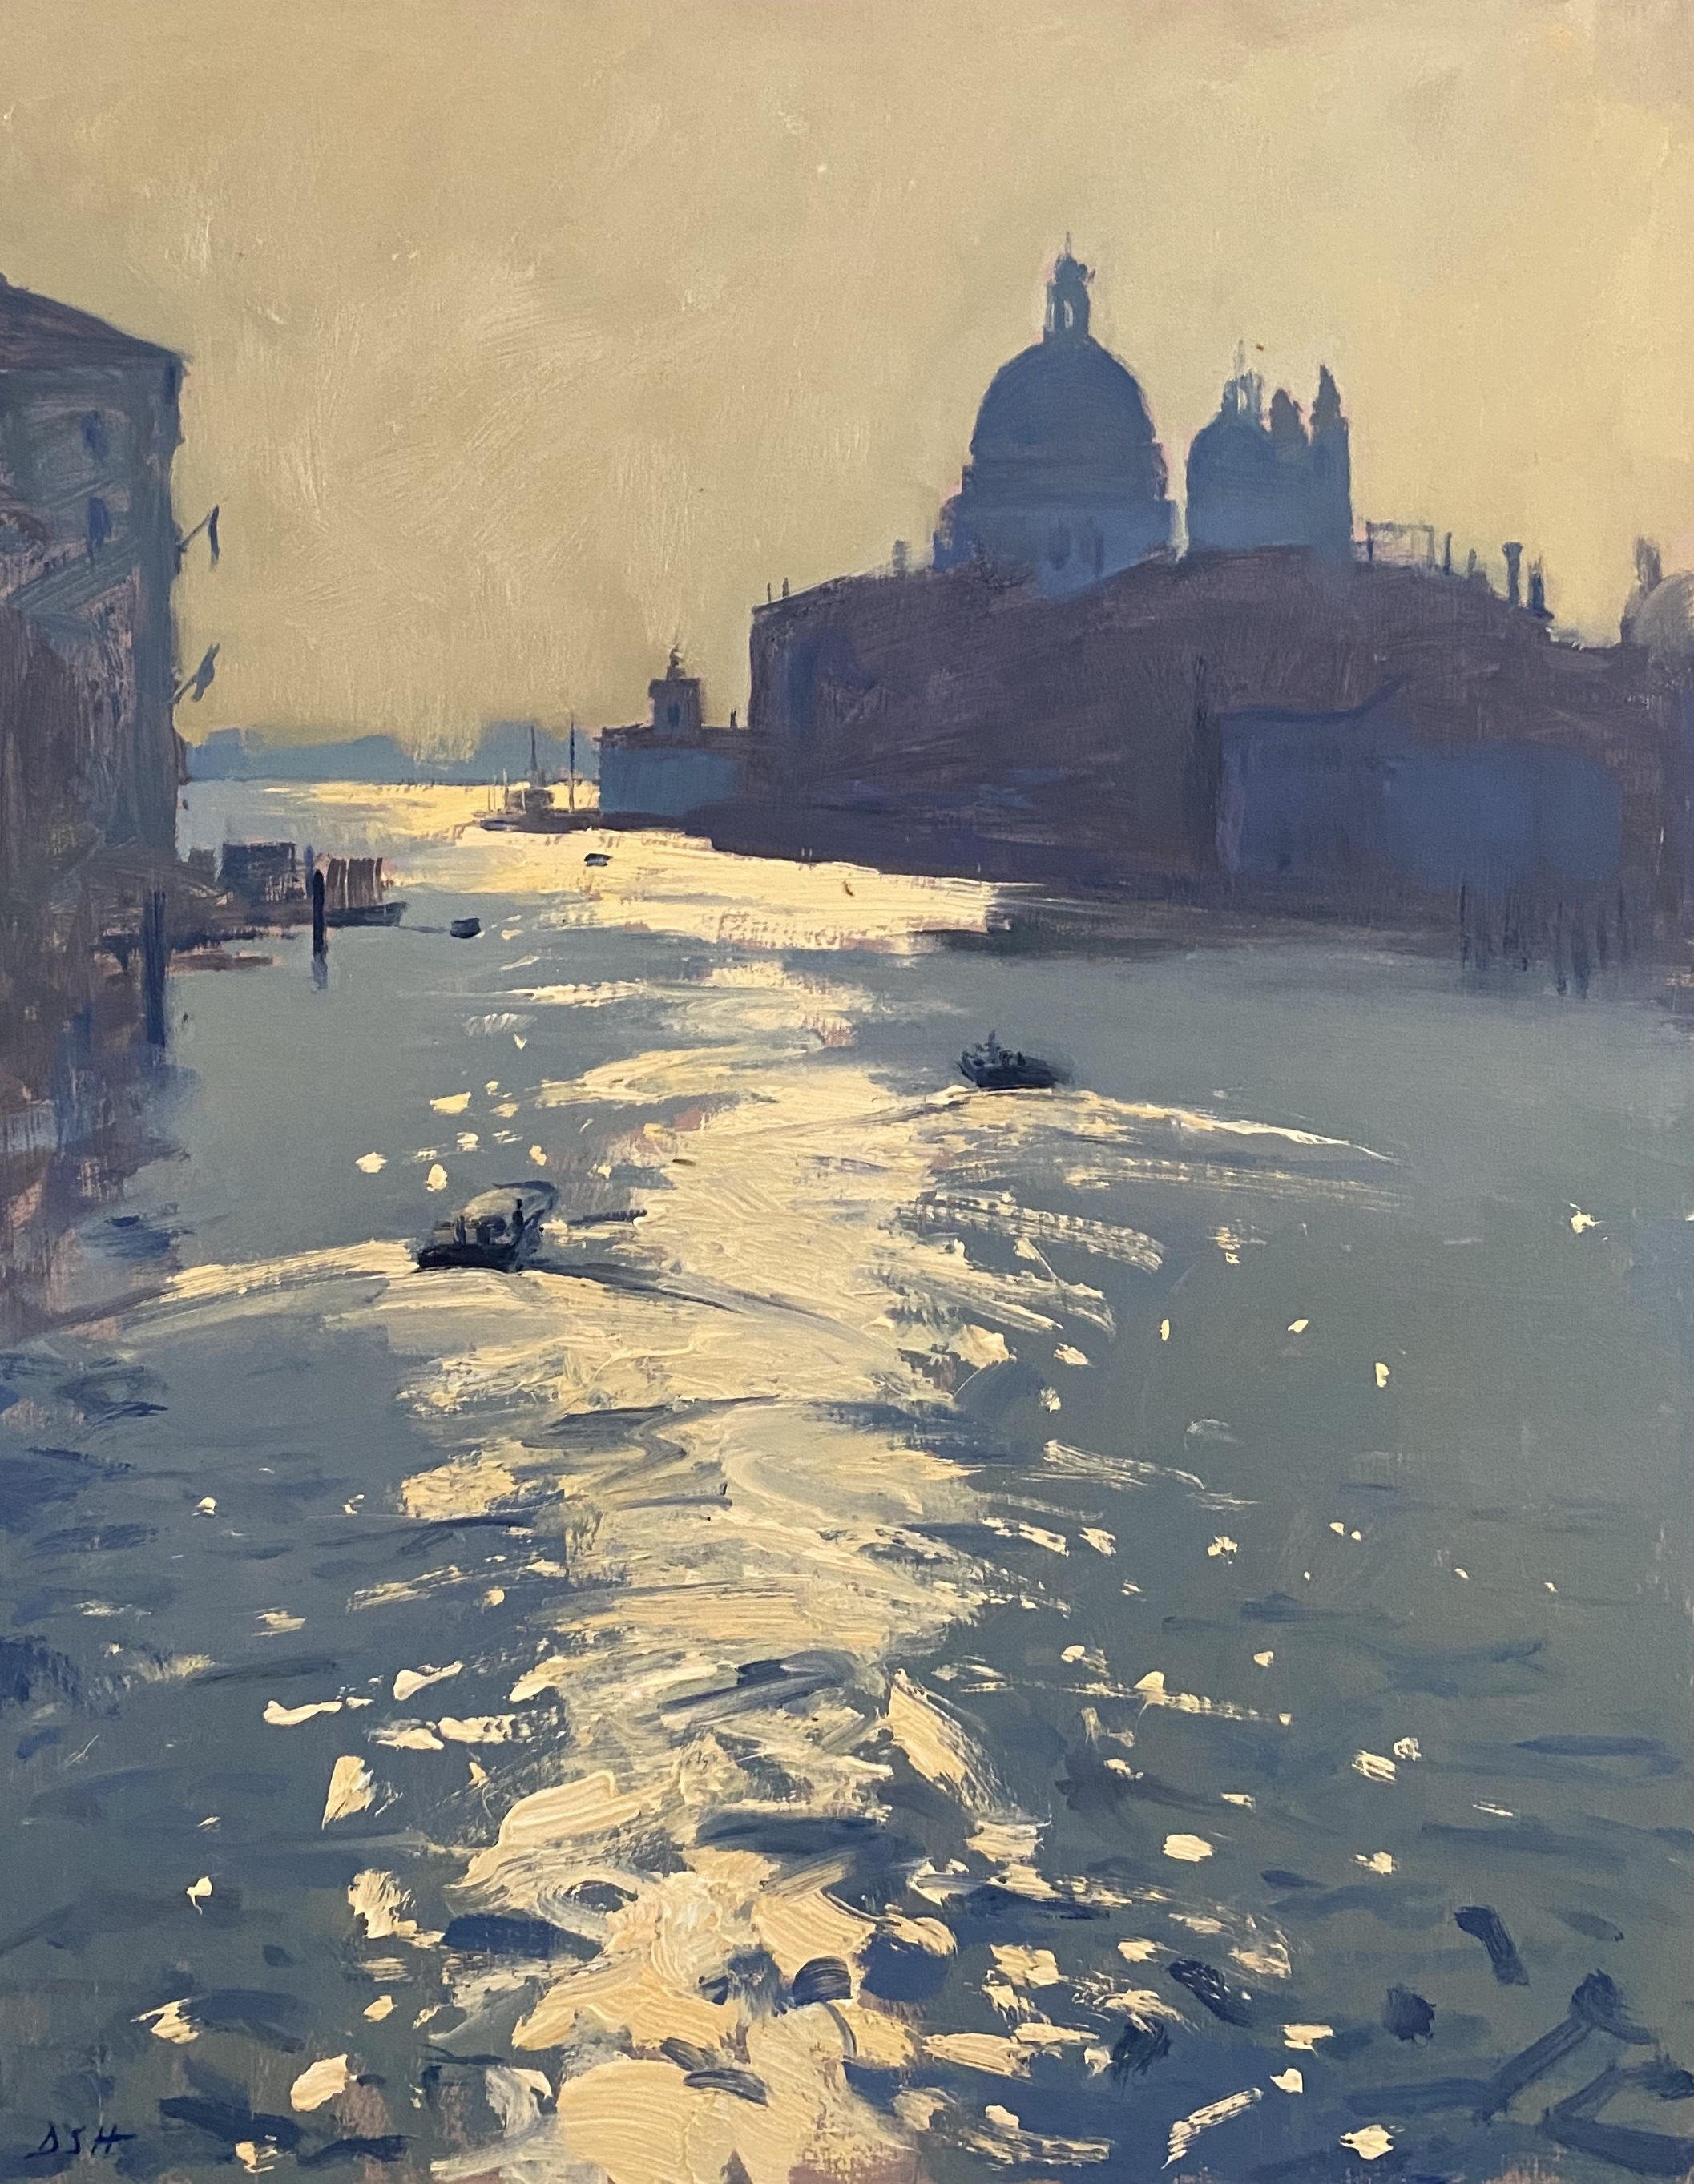 Early light from the Accademia Bridge